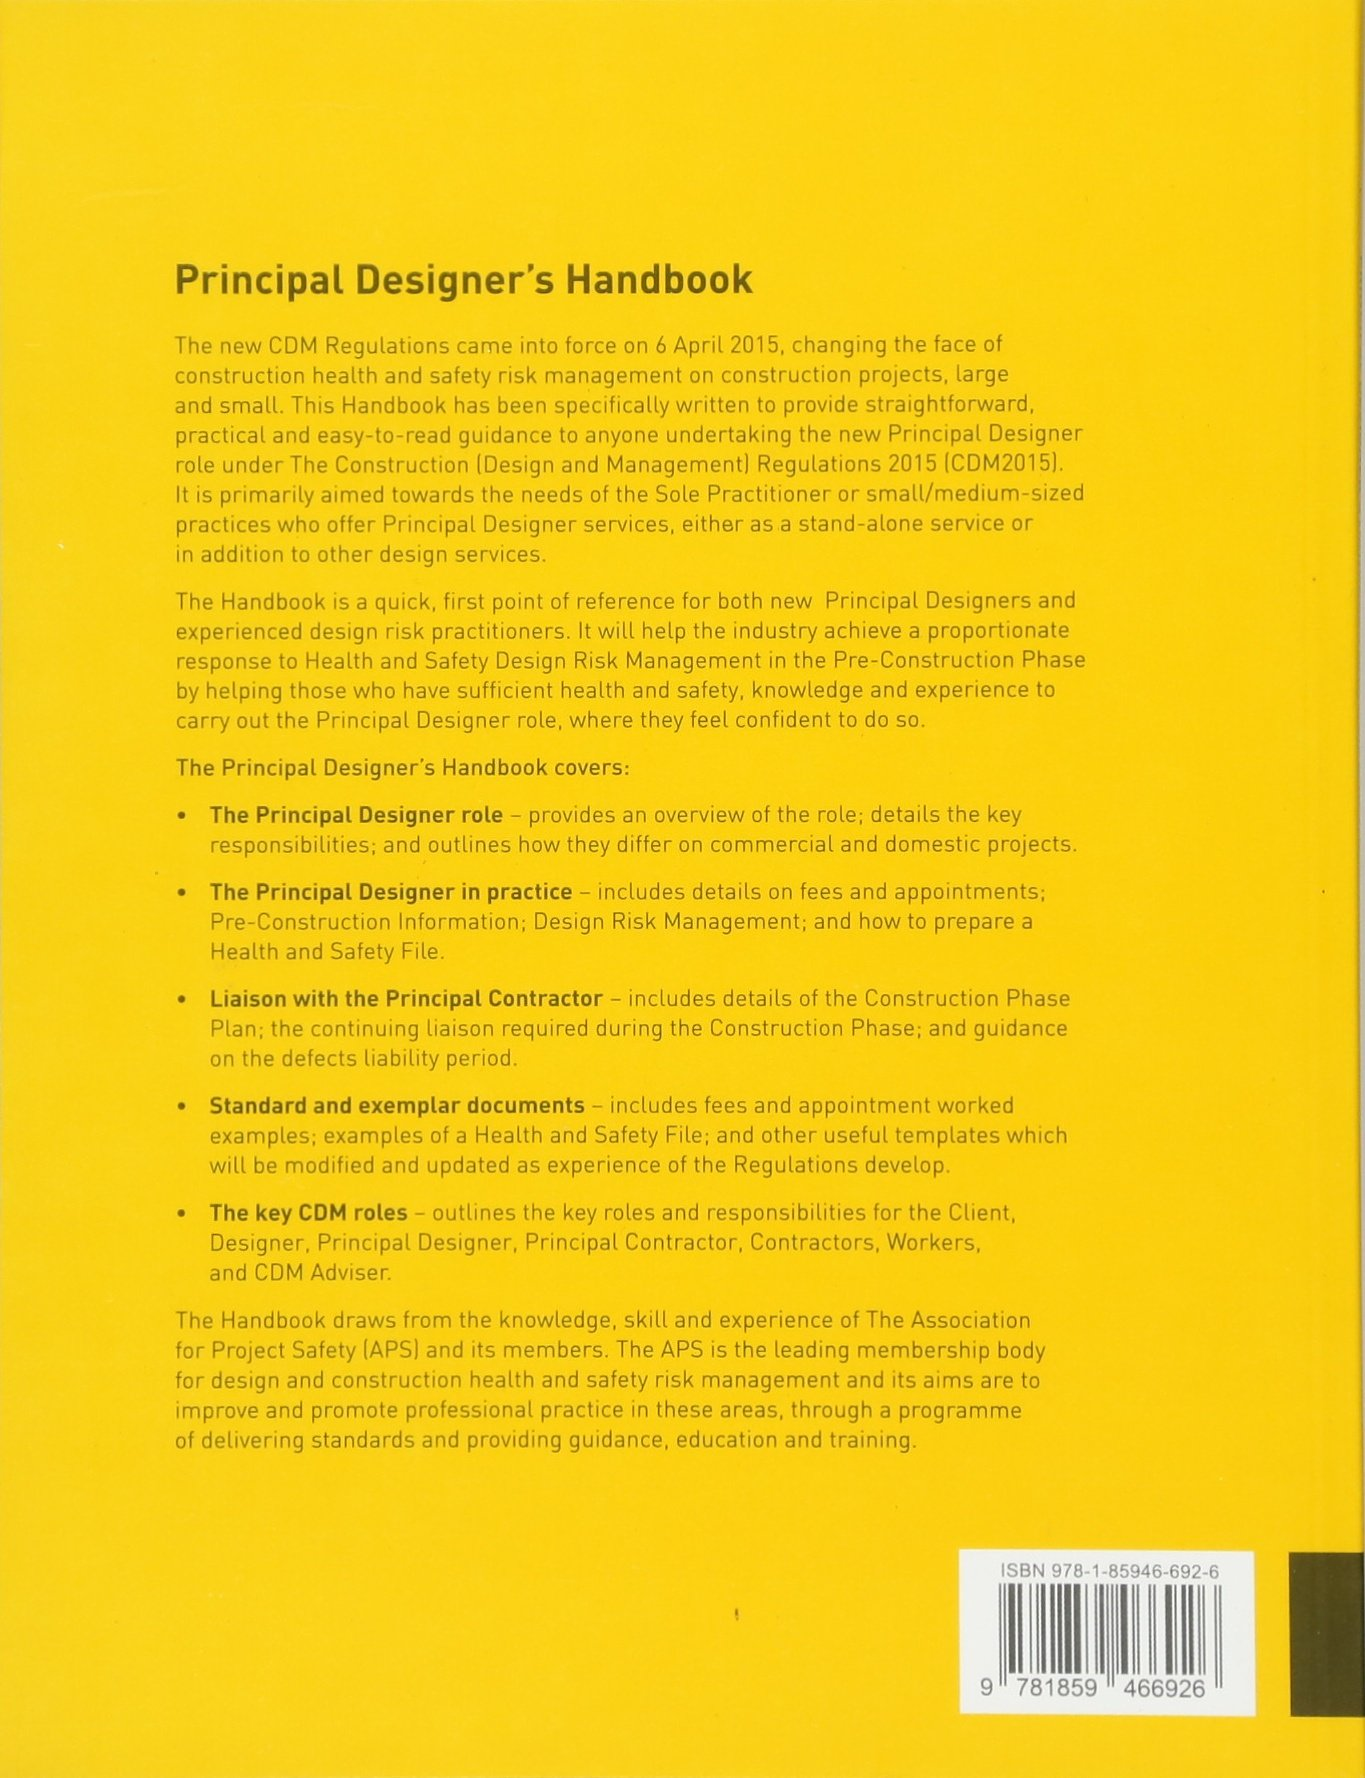 Principal Designer S Handbook Association For Project Safety 9781859466926 Amazon Com Books